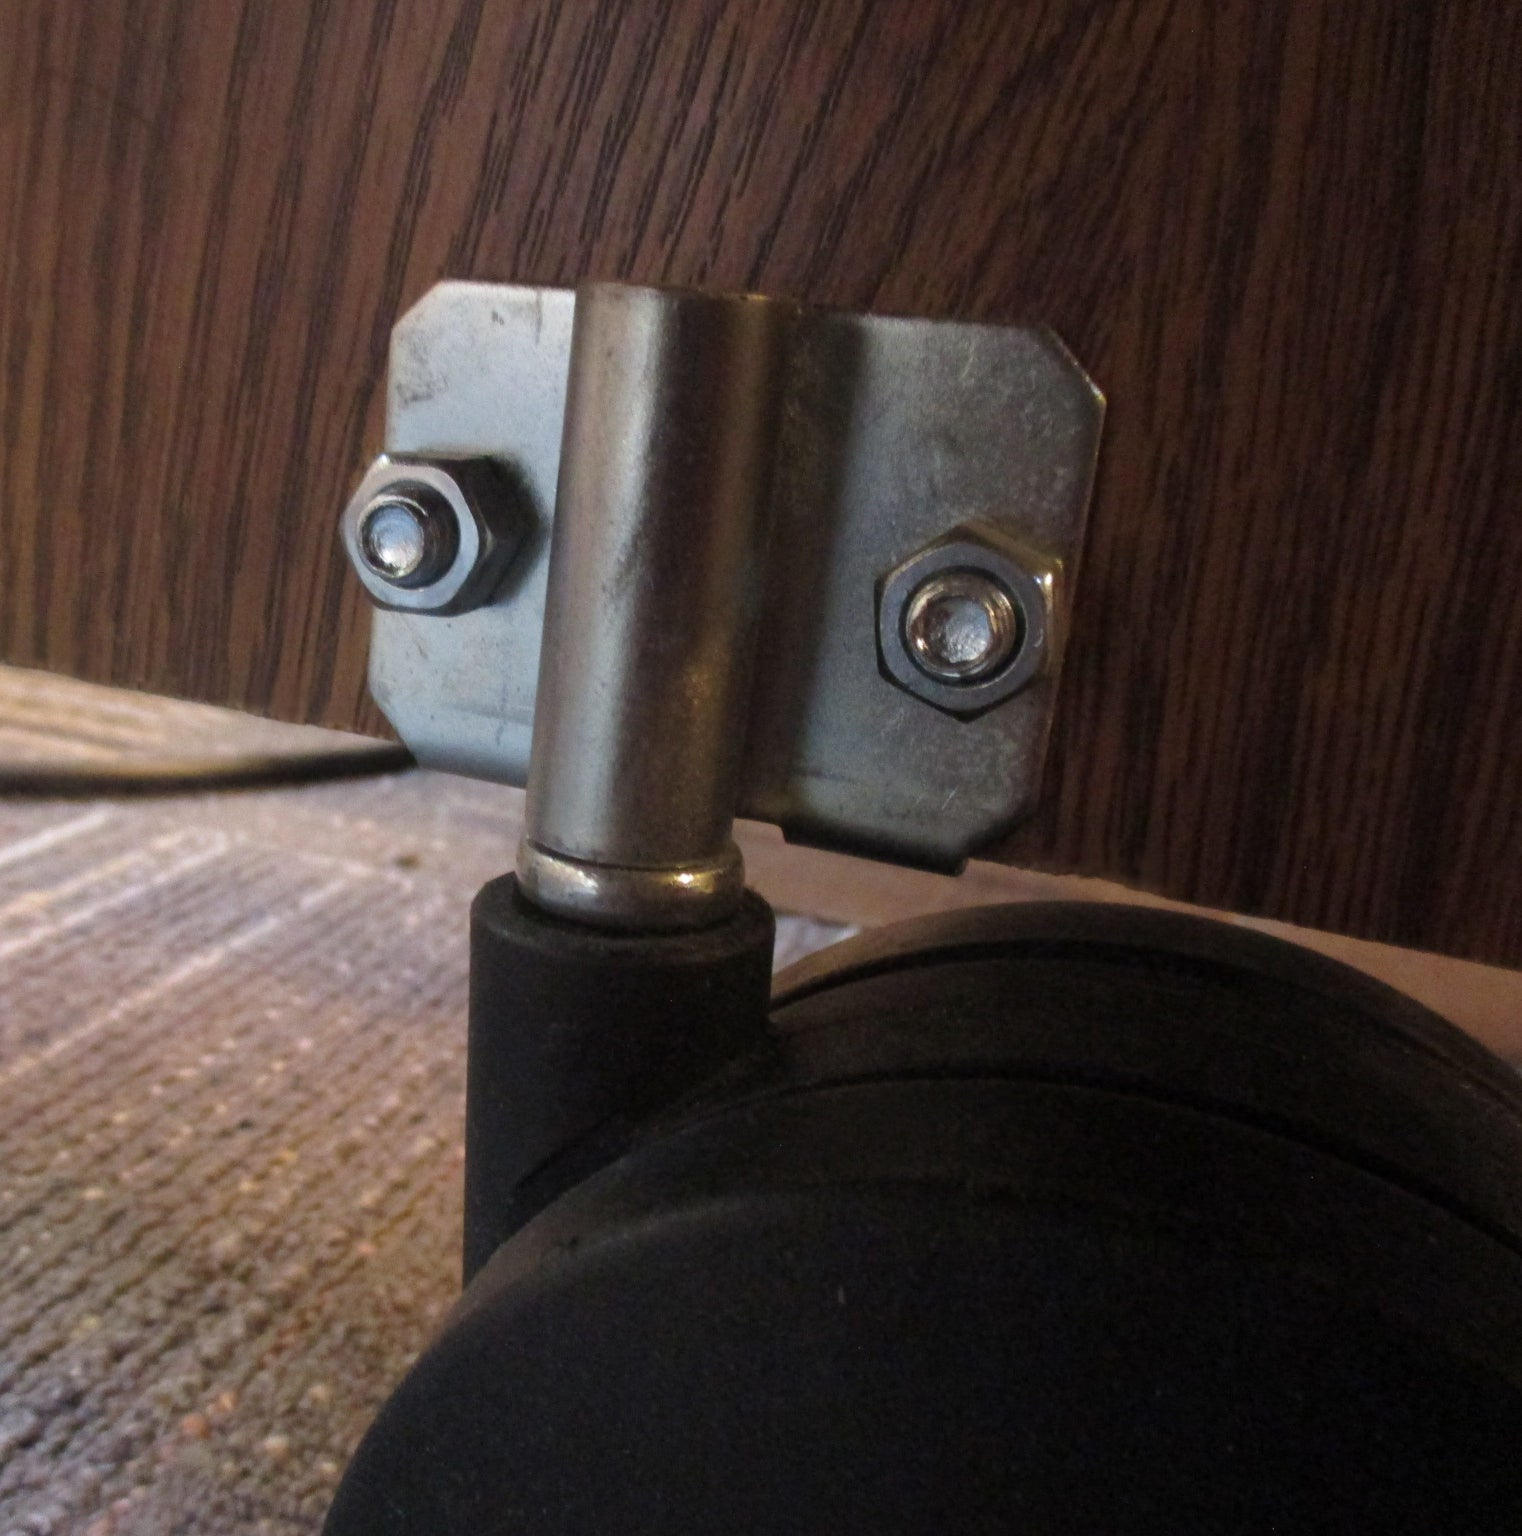 Side Caster Socket For Desks and Other Furniture